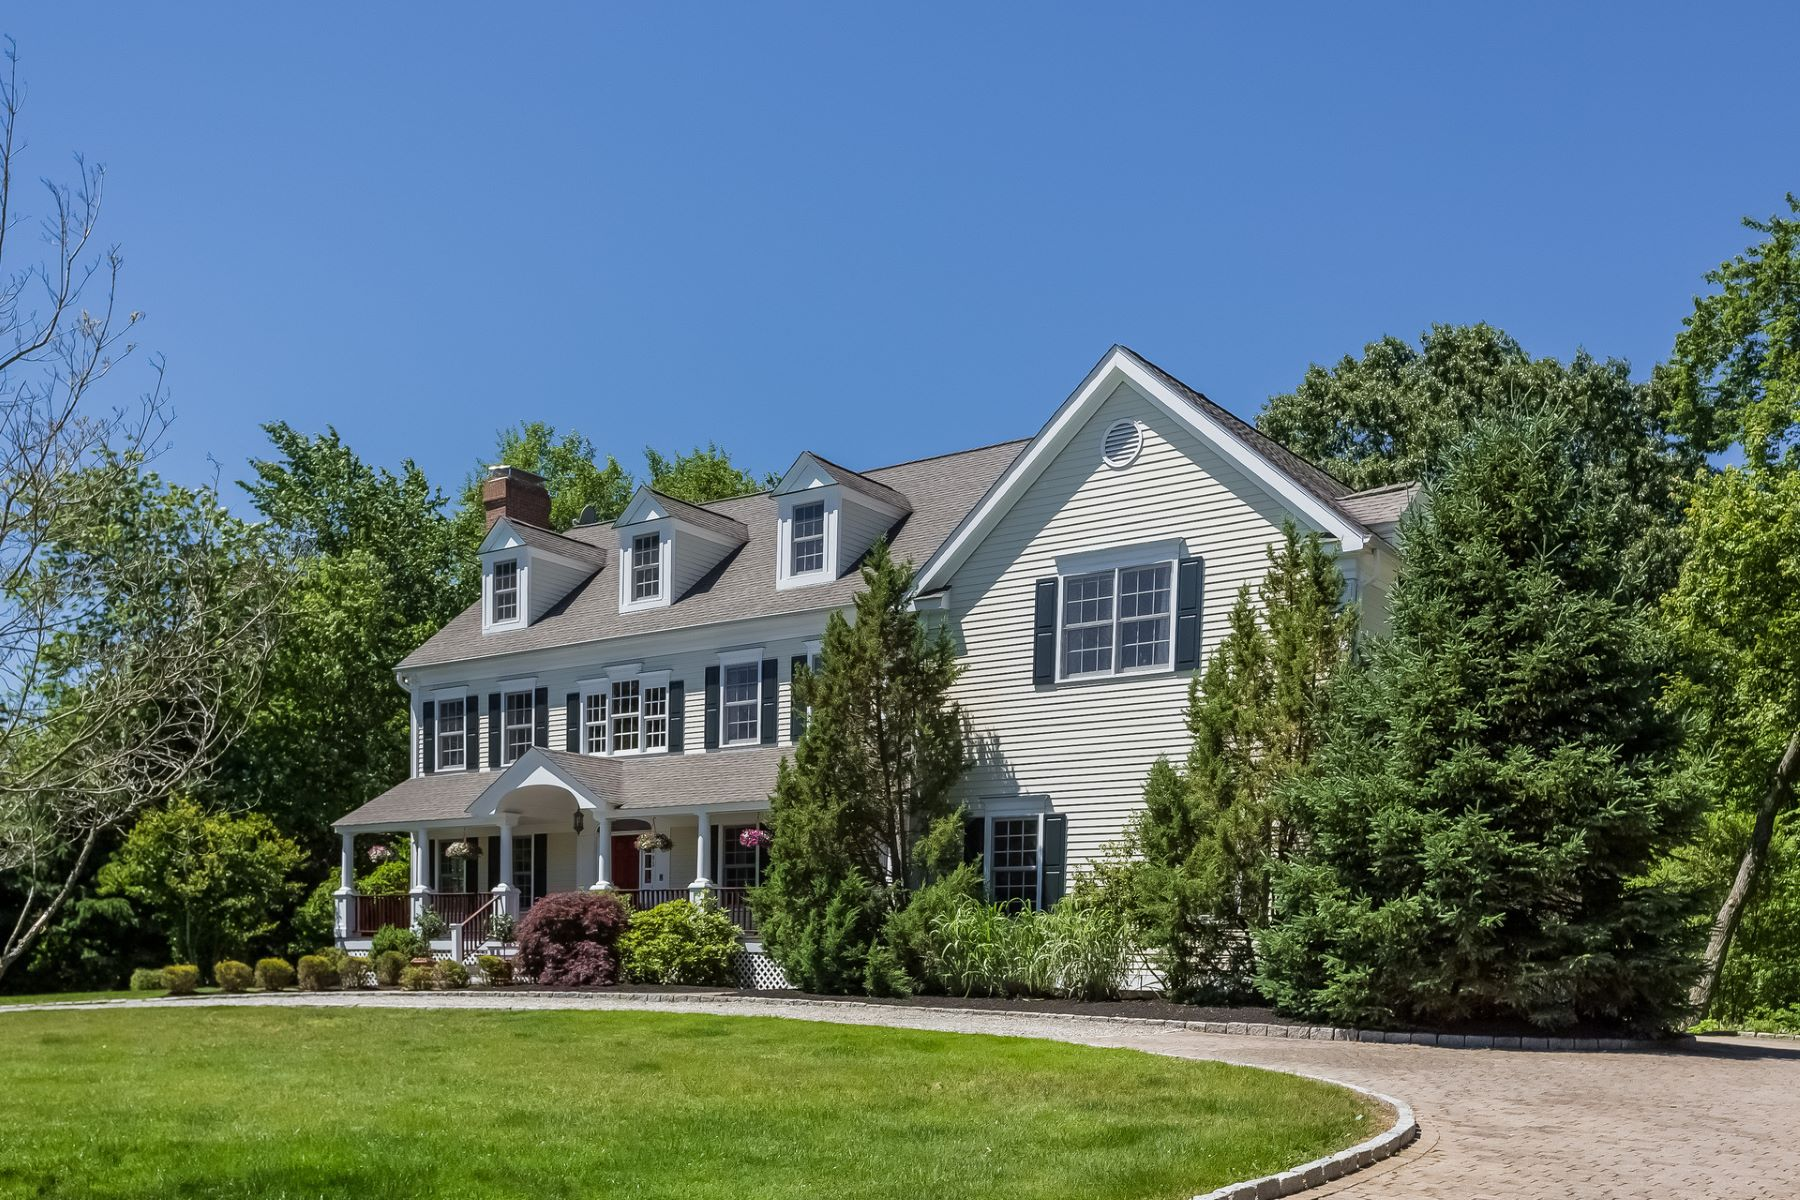 Single Family Home for Sale at Spacious and Welcoming 193 Sturges Ridge Road Wilton, Connecticut, 06897 United States